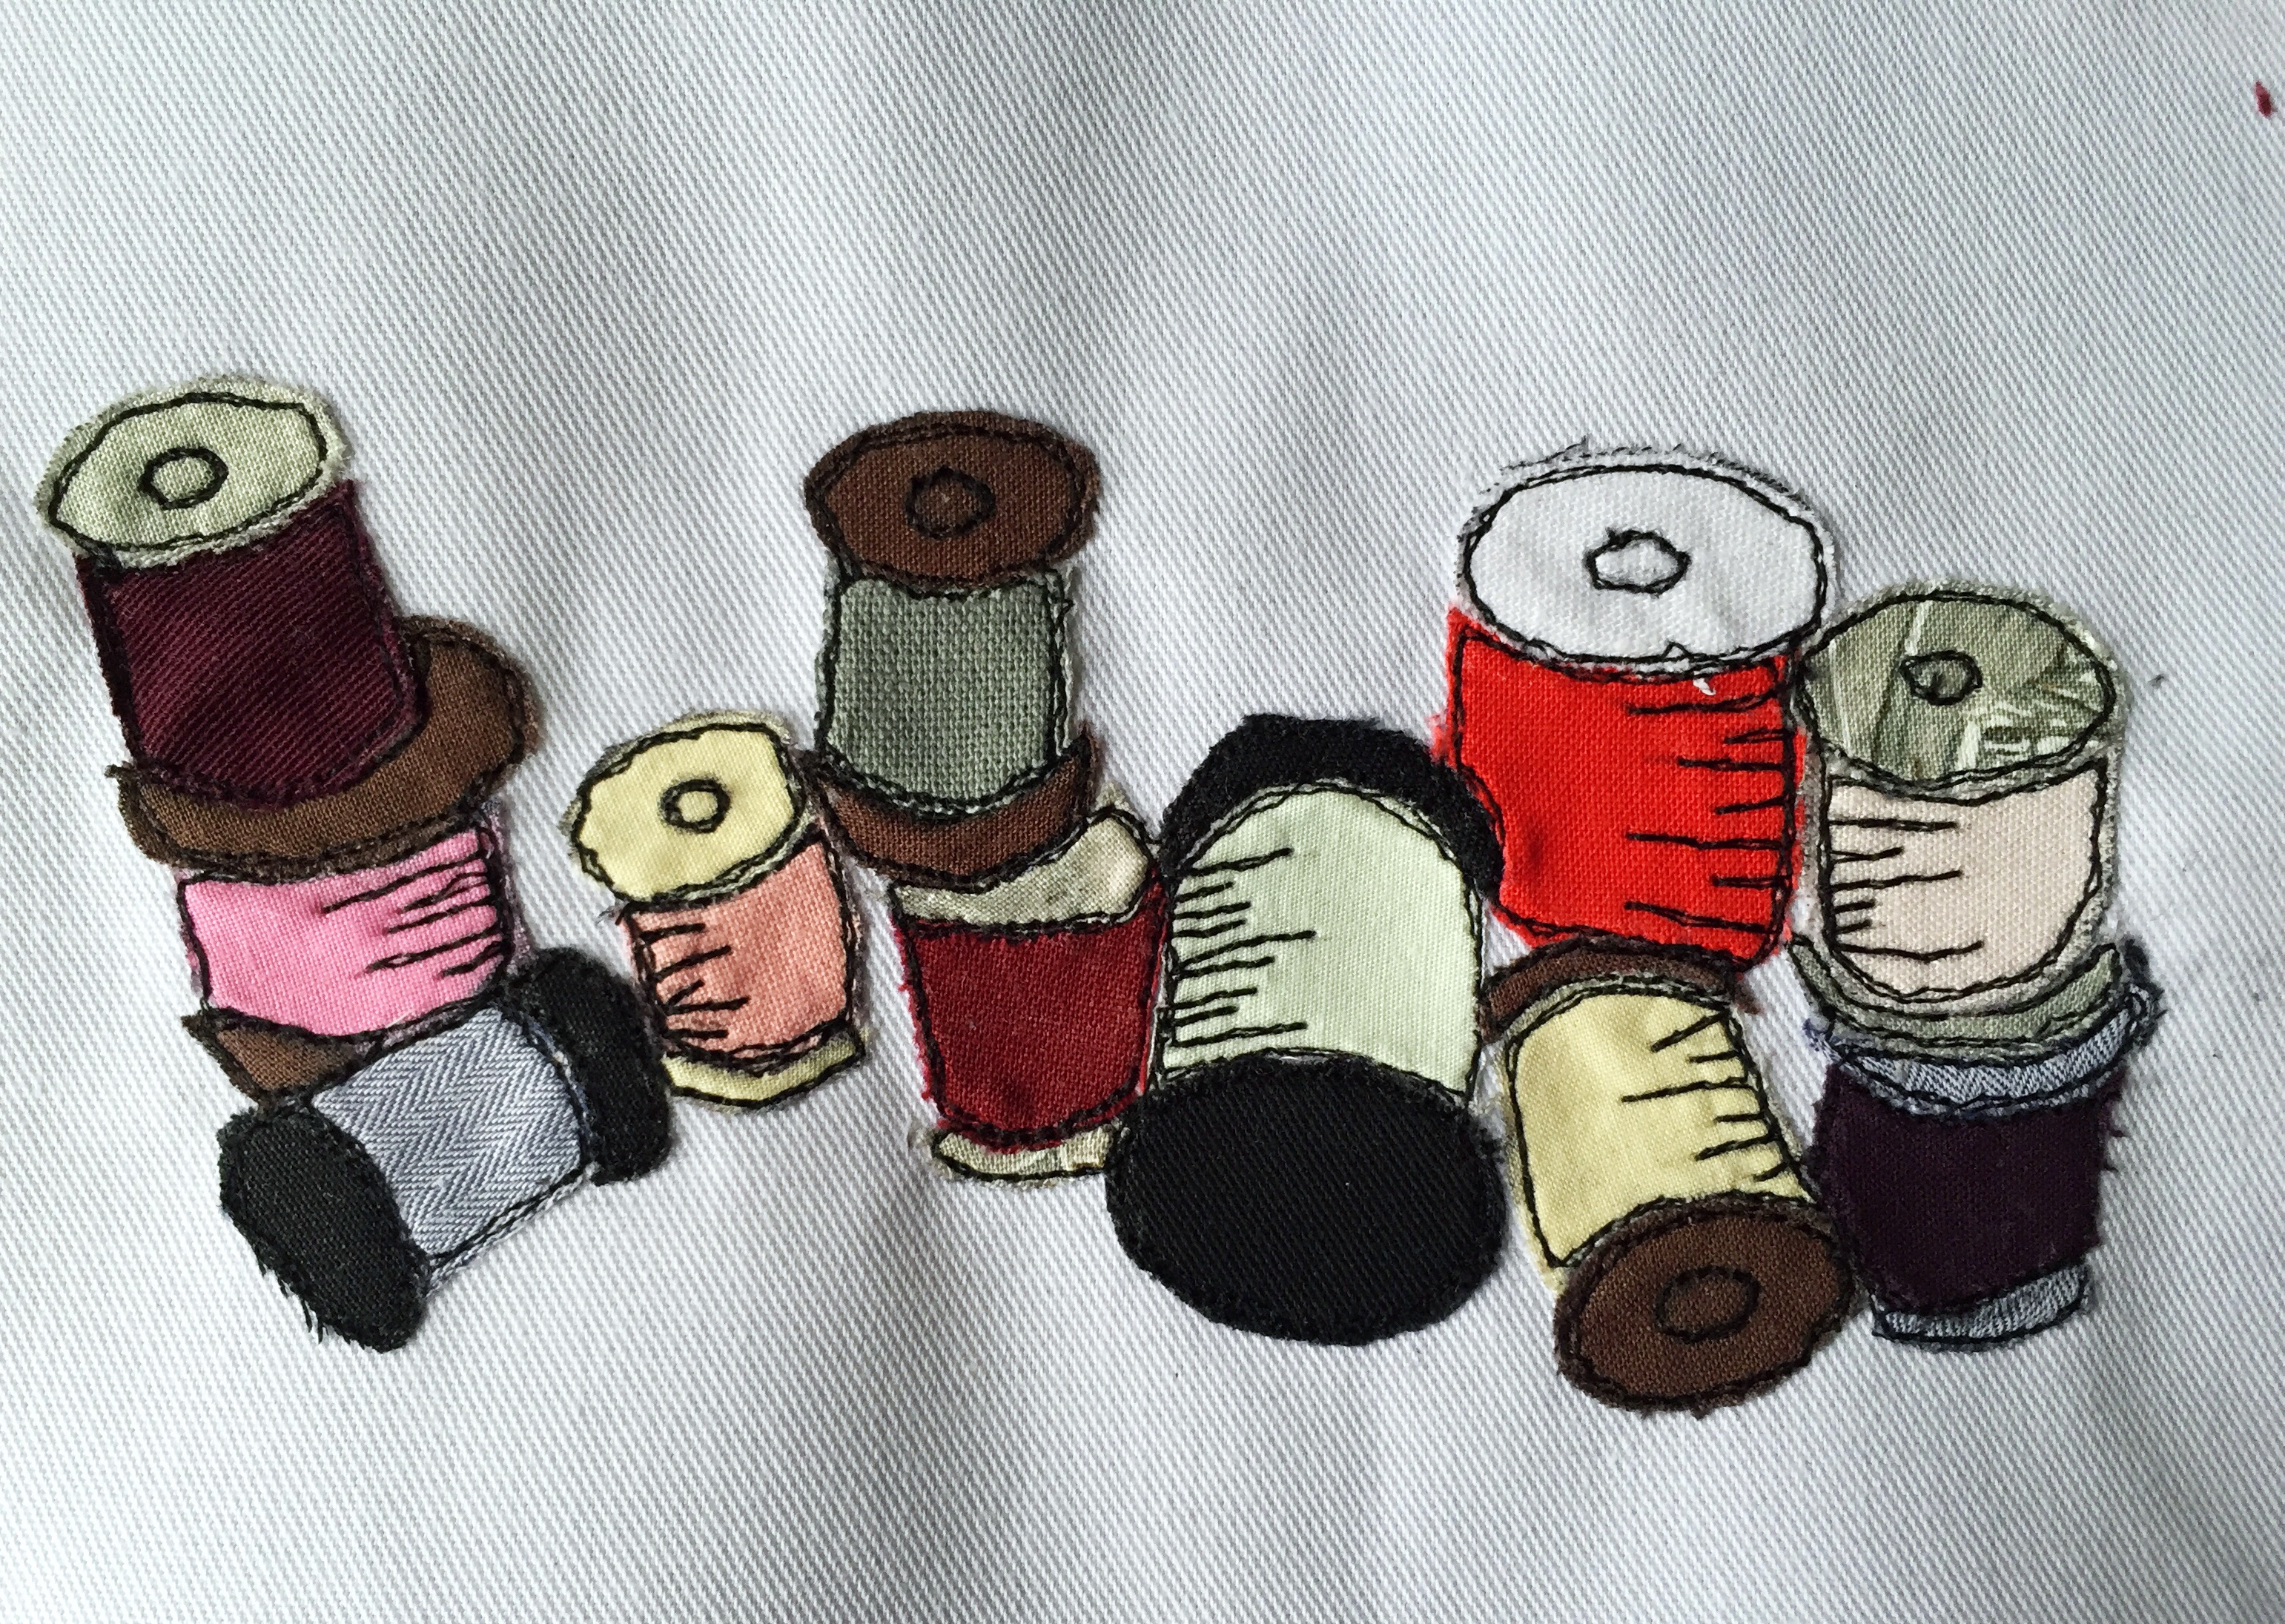 Free motion embroidery thread spools